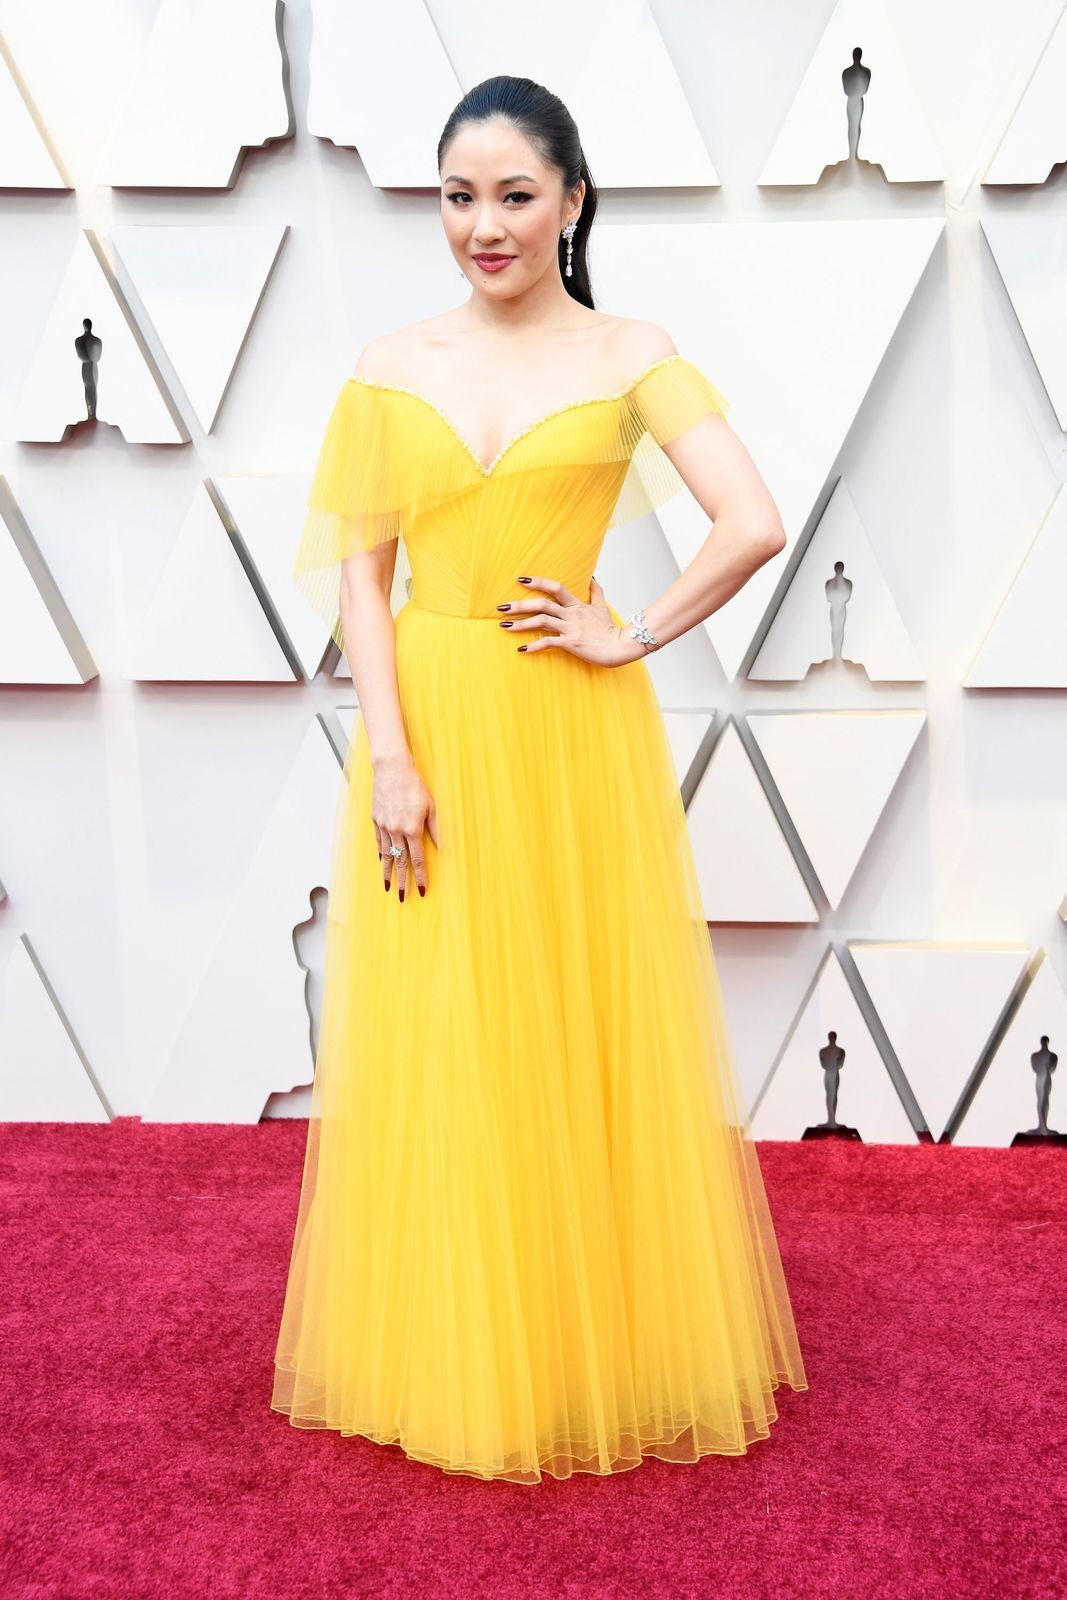 hbz best dressed oscars 2019 constance wu 1551060060